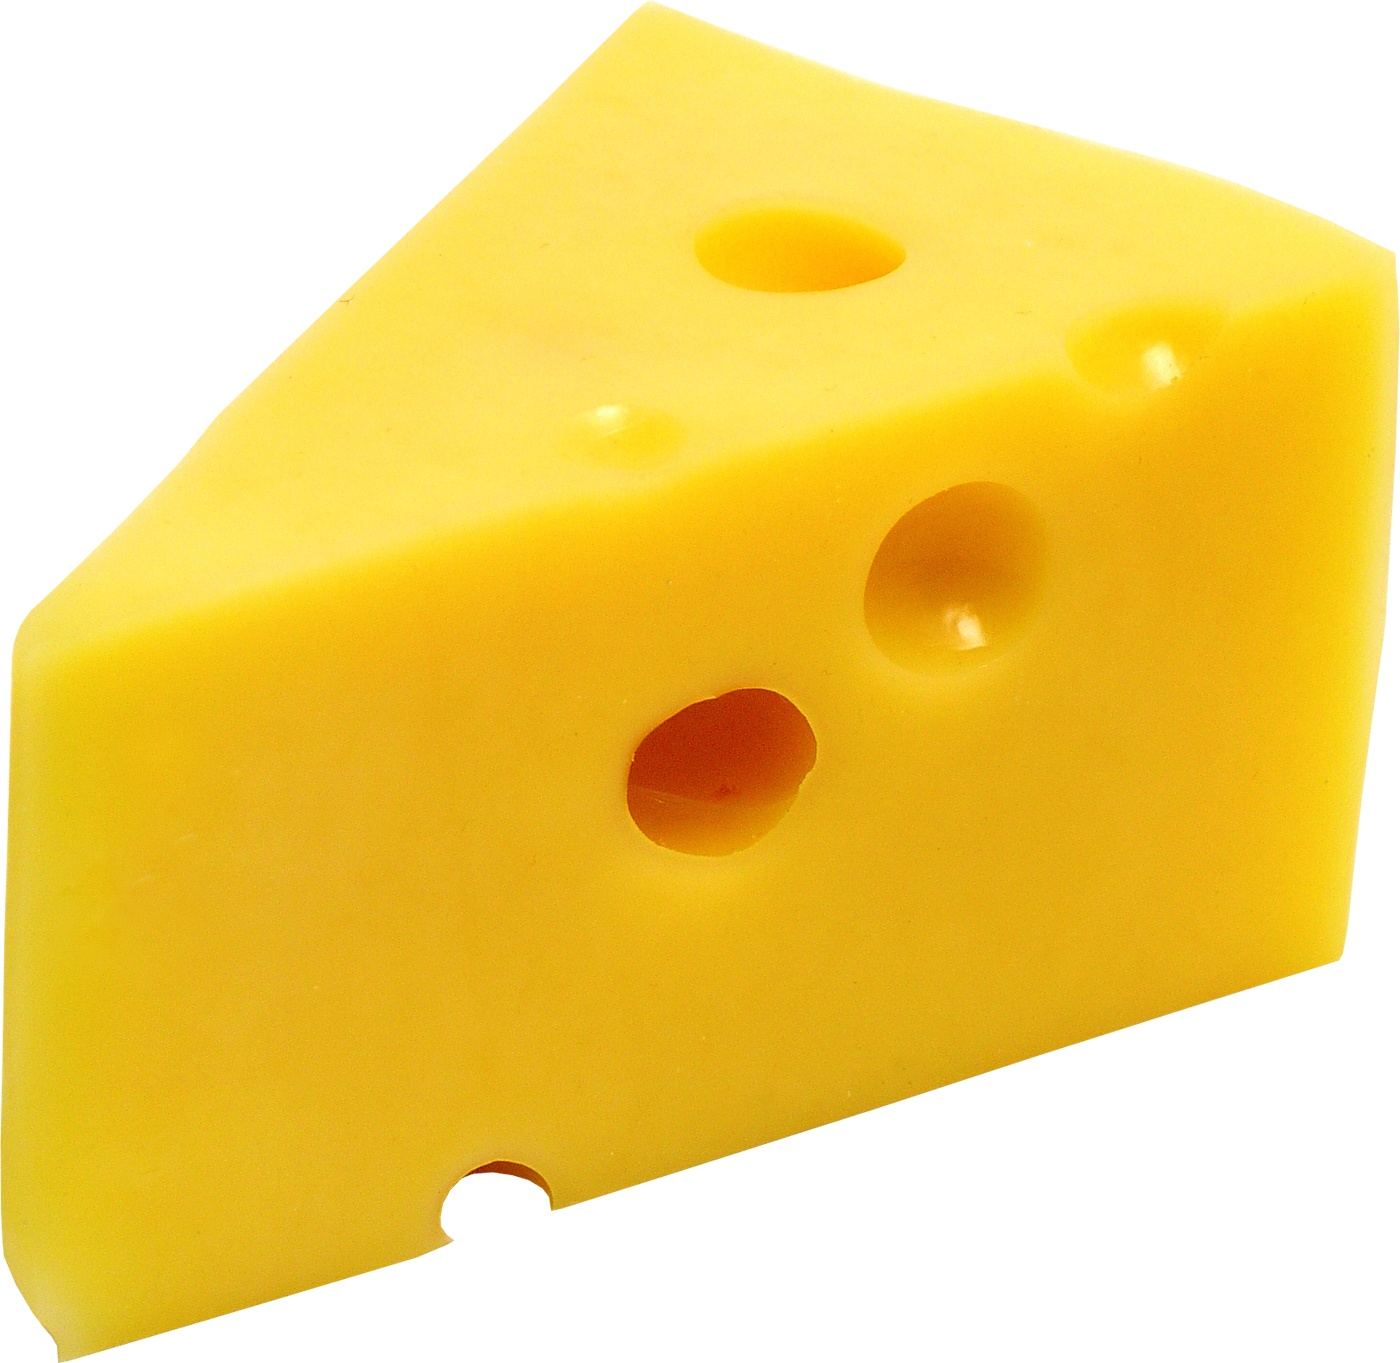 1400x1363 > Cheese Wallpapers